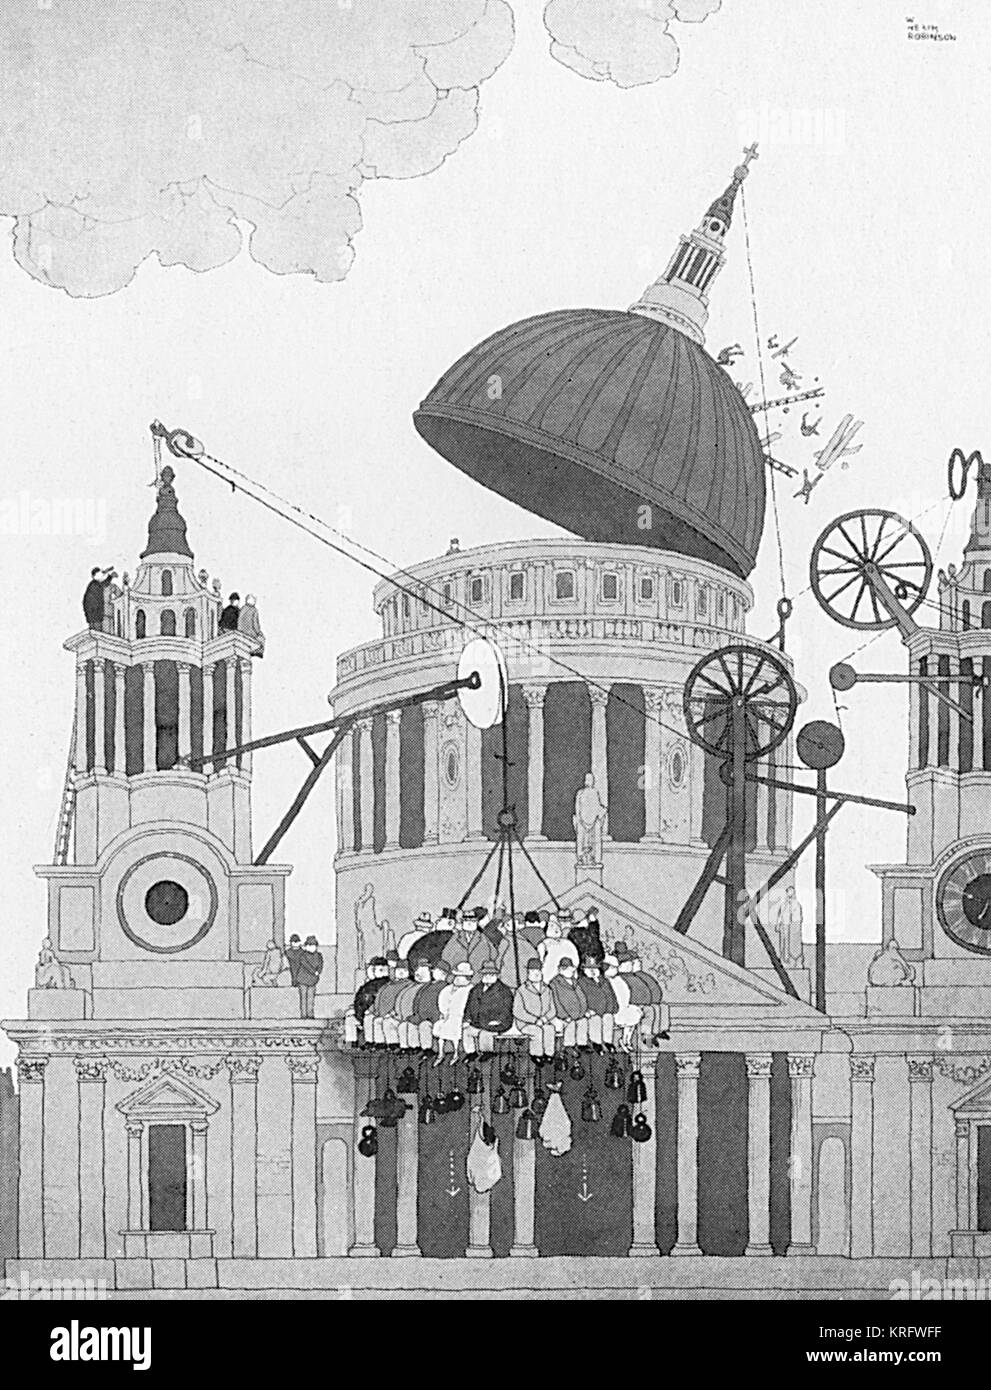 Defence during WW2 -- Stout members of the sixth column dislodge an enemy machine gun post on the dome of St Paul's, - Stock Image